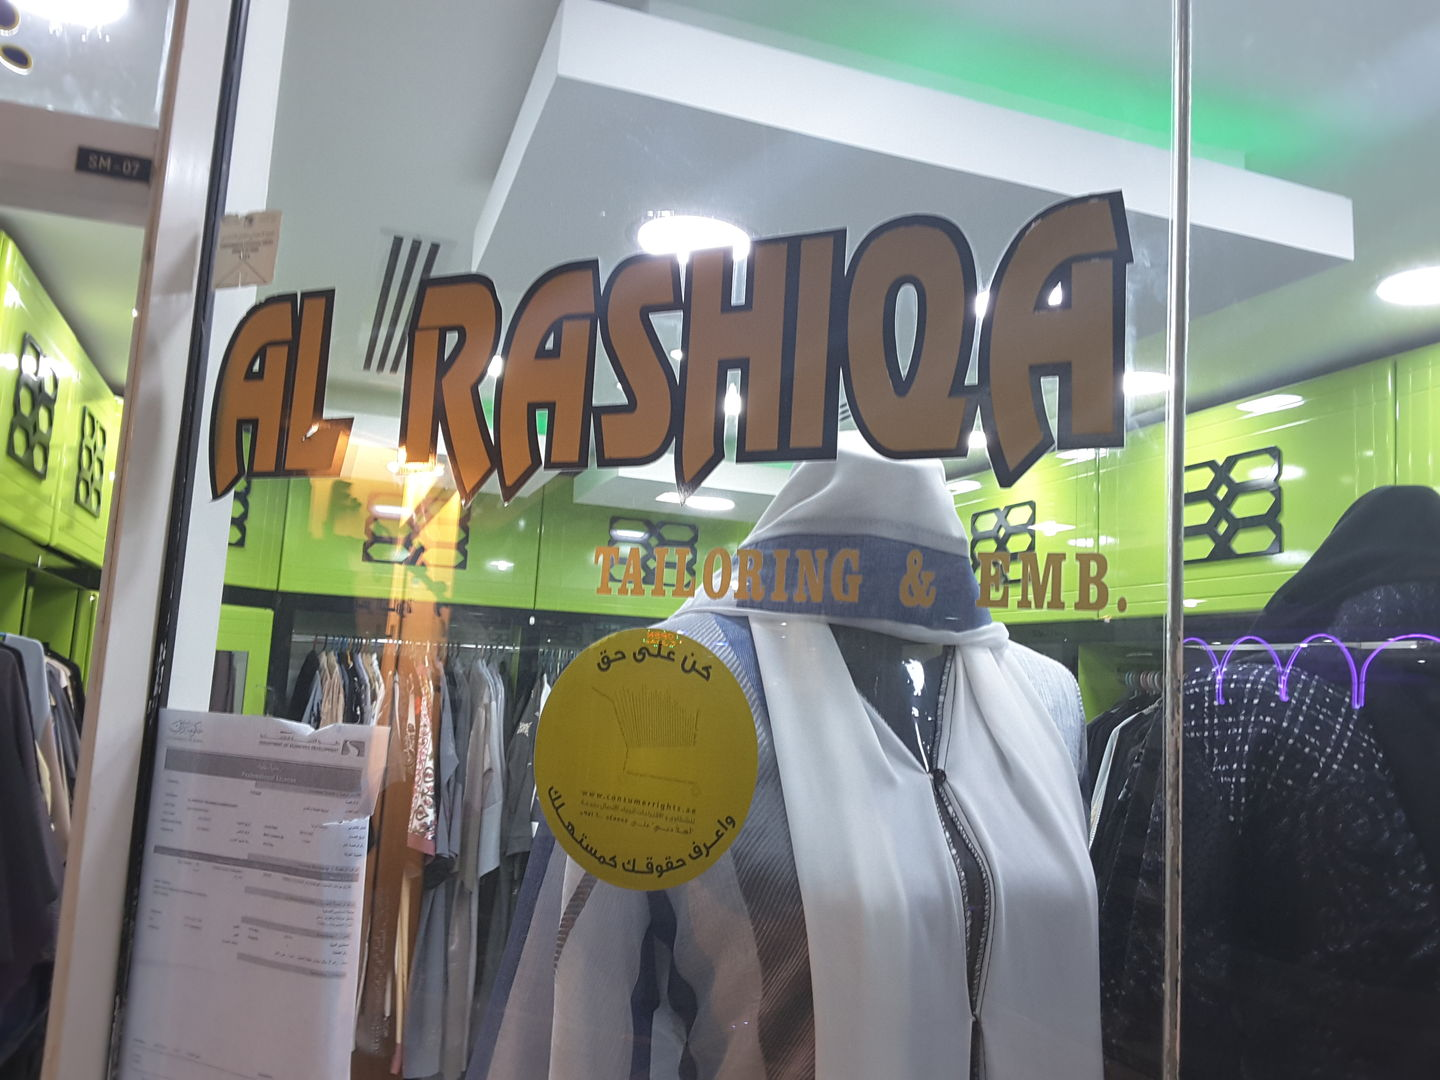 HiDubai-business-al-rashiqa-tailoring-embroidery-shopping-apparel-hor-al-anz-east-dubai-2